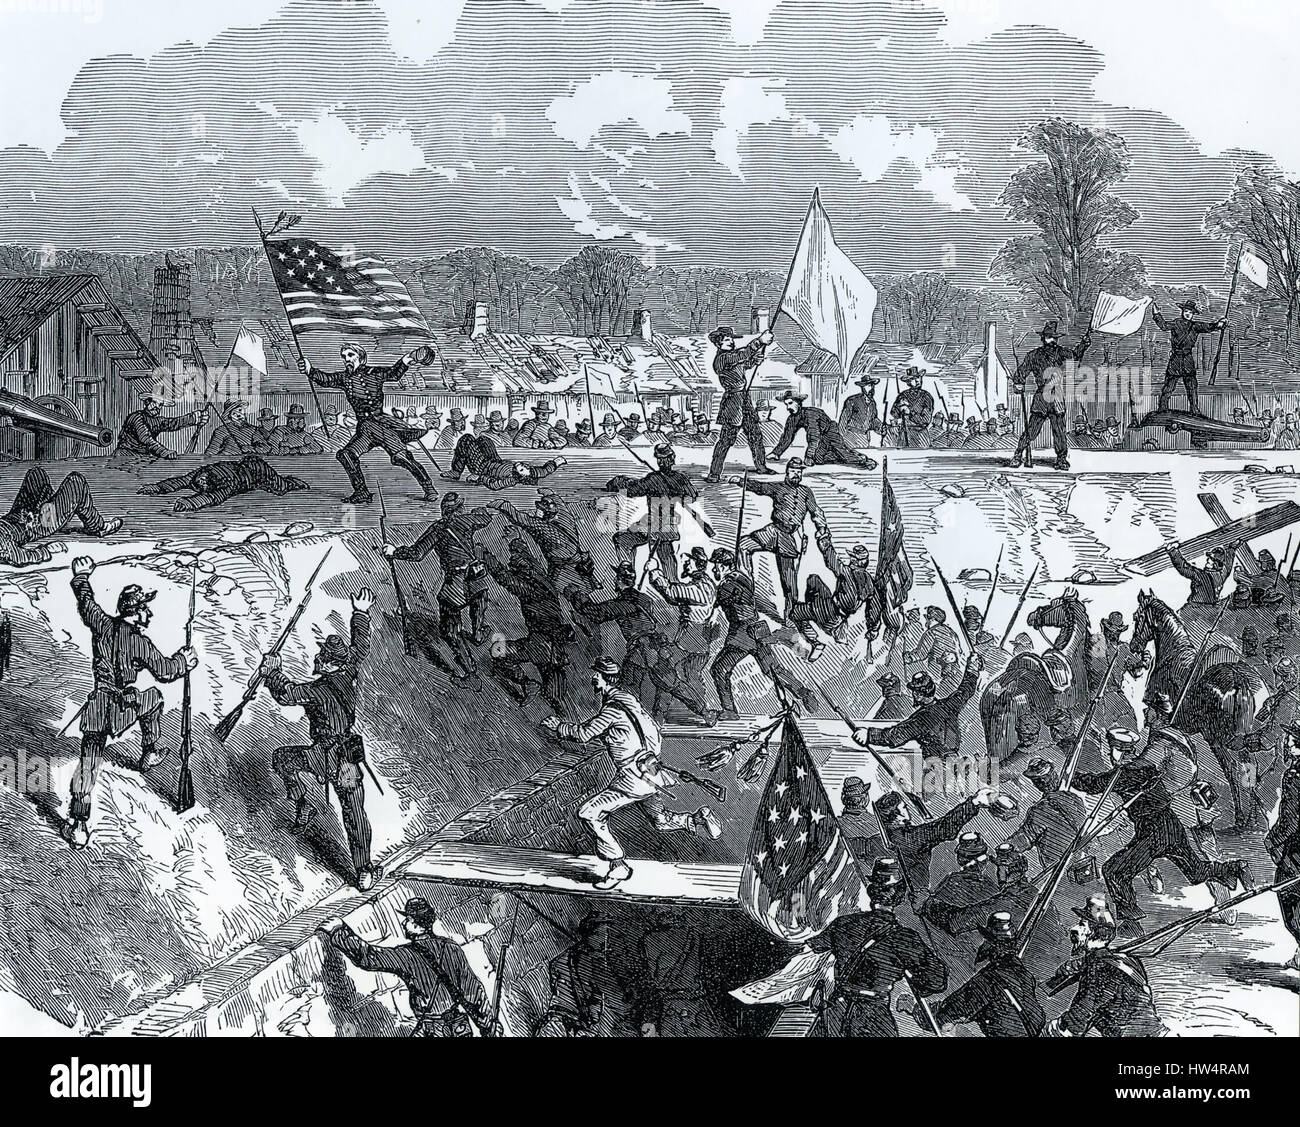 FORT HINDMAN, Arkansas, is captured by union forces on 11 January 1863 during the American Civil War - Stock Image